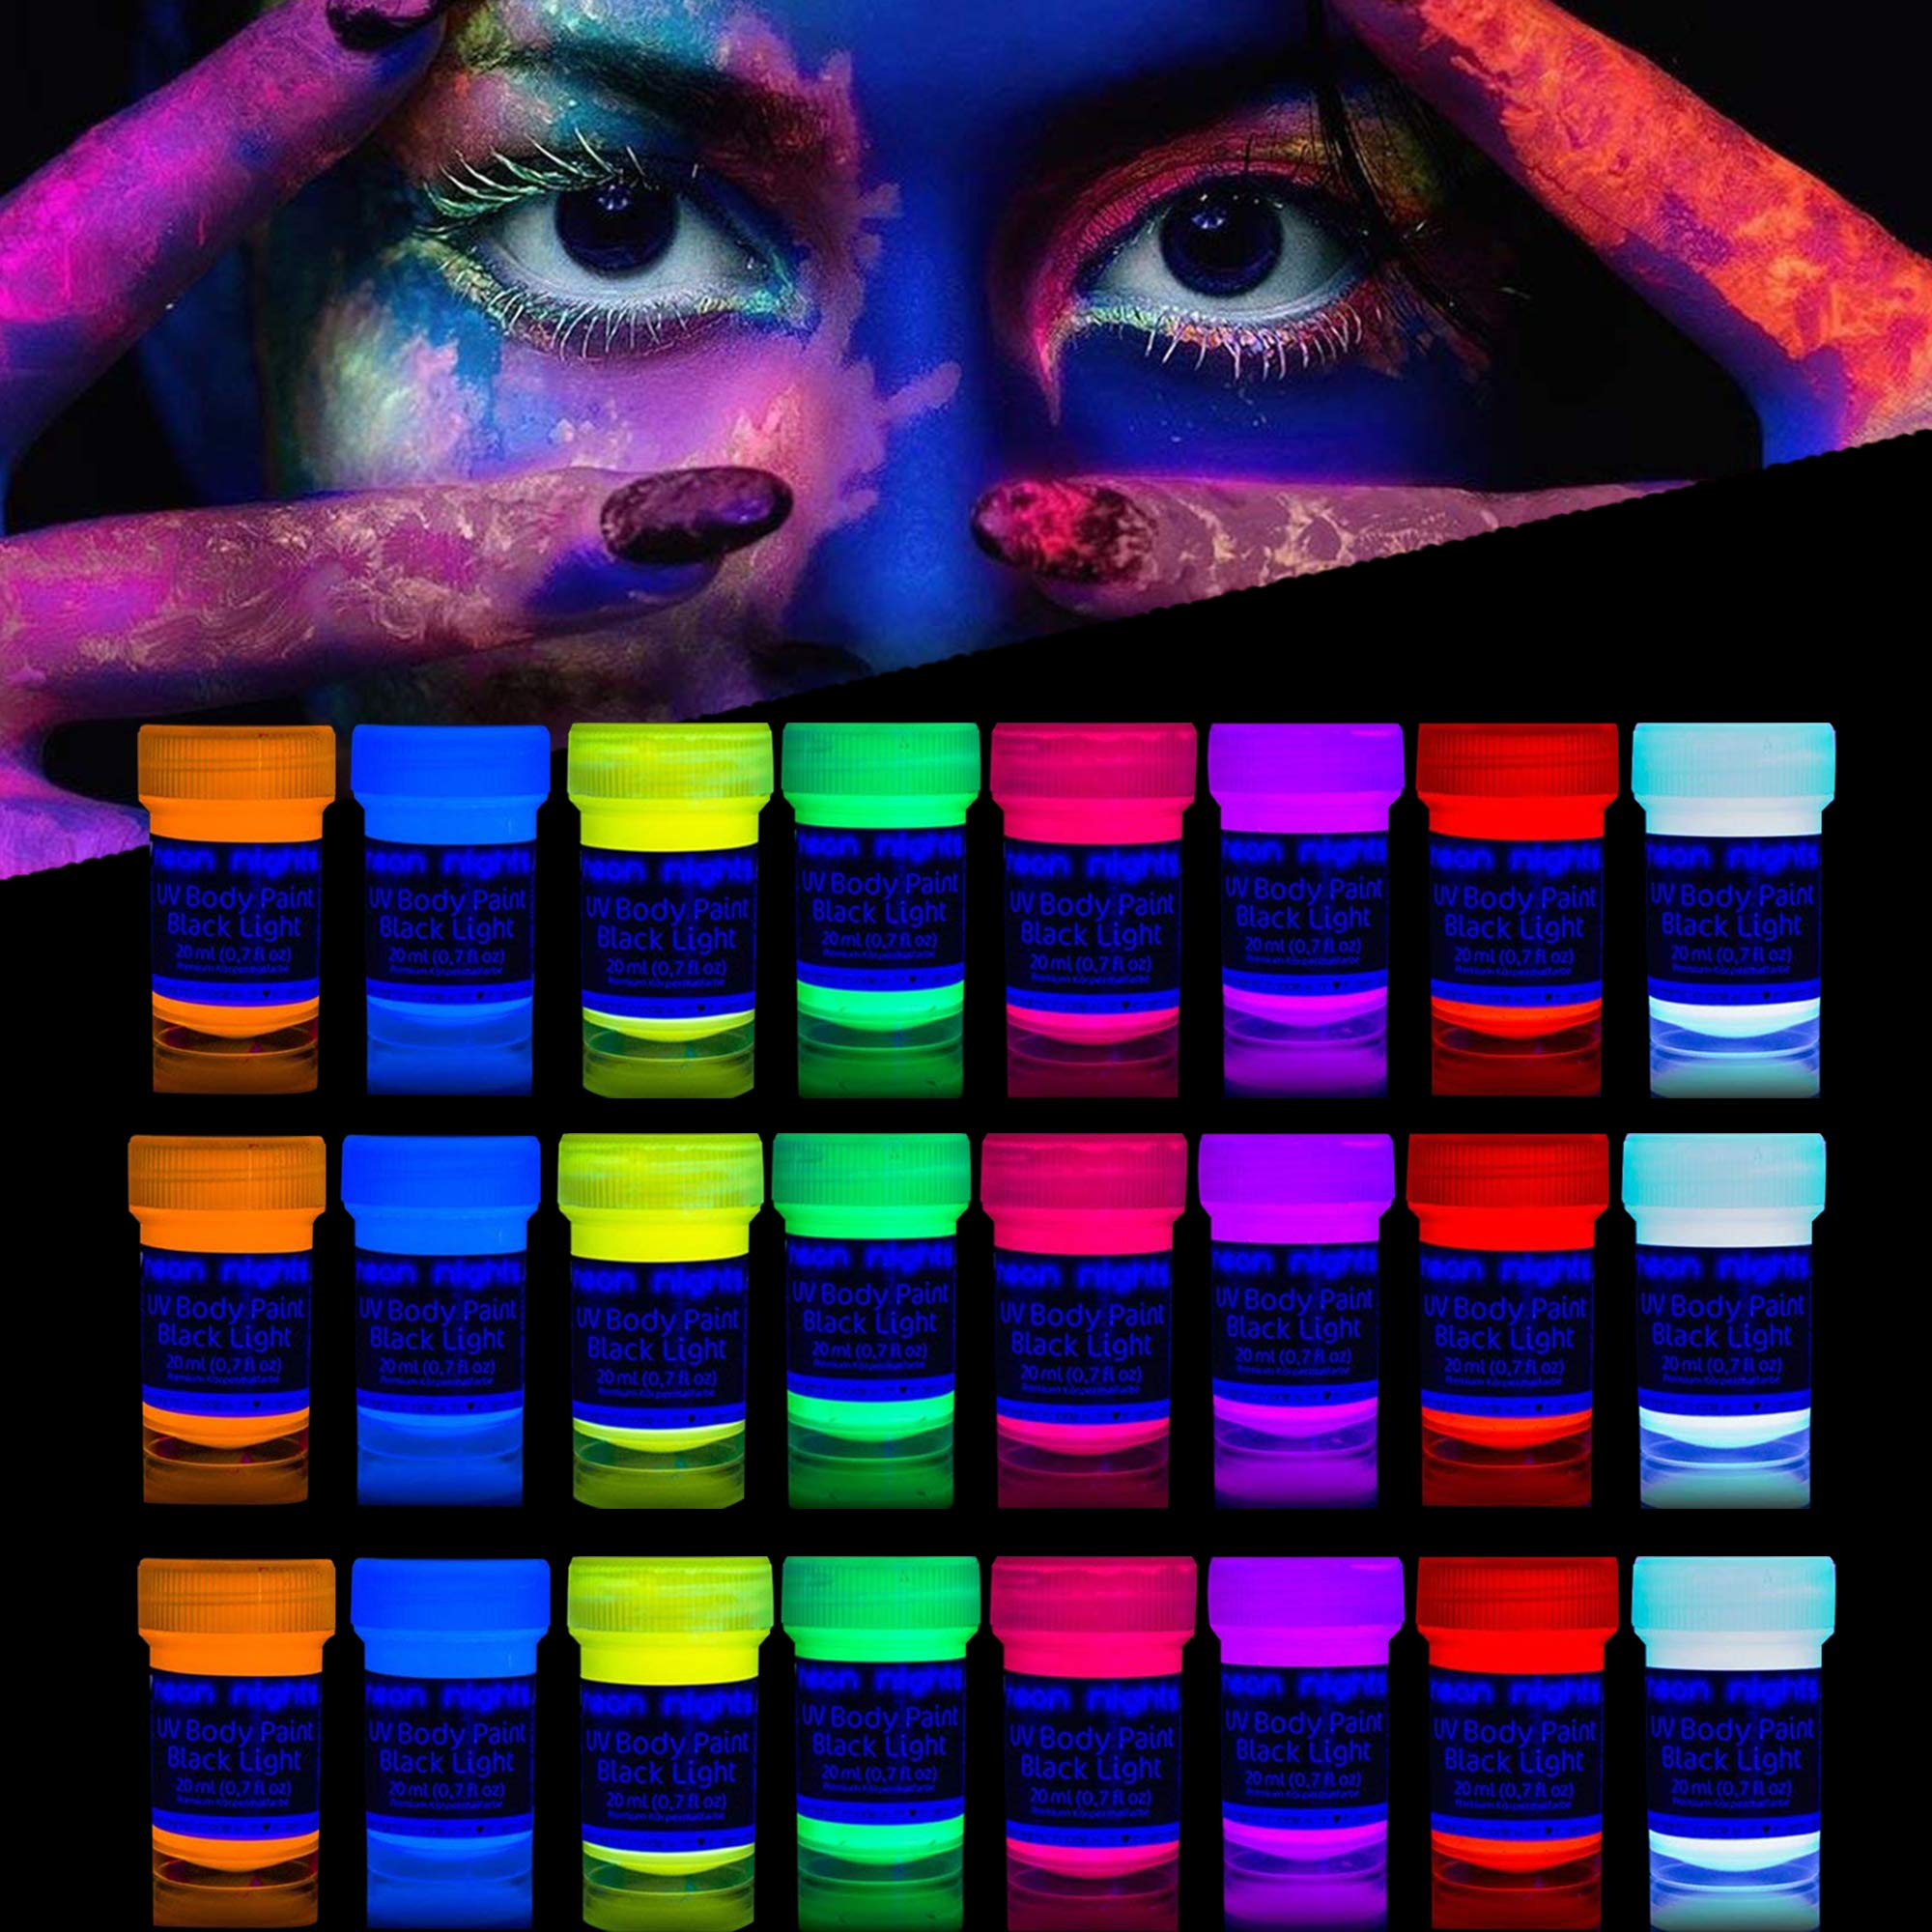 'XXL Set' 24 Cans of Neon Body Paints by neon nights - 16.5 fl oz of Luminescent Body Paints - Long-Lasting Neon Body Paints for Blacklights, UV Lights - Fluorescent Body Paints for Adults by neon nights